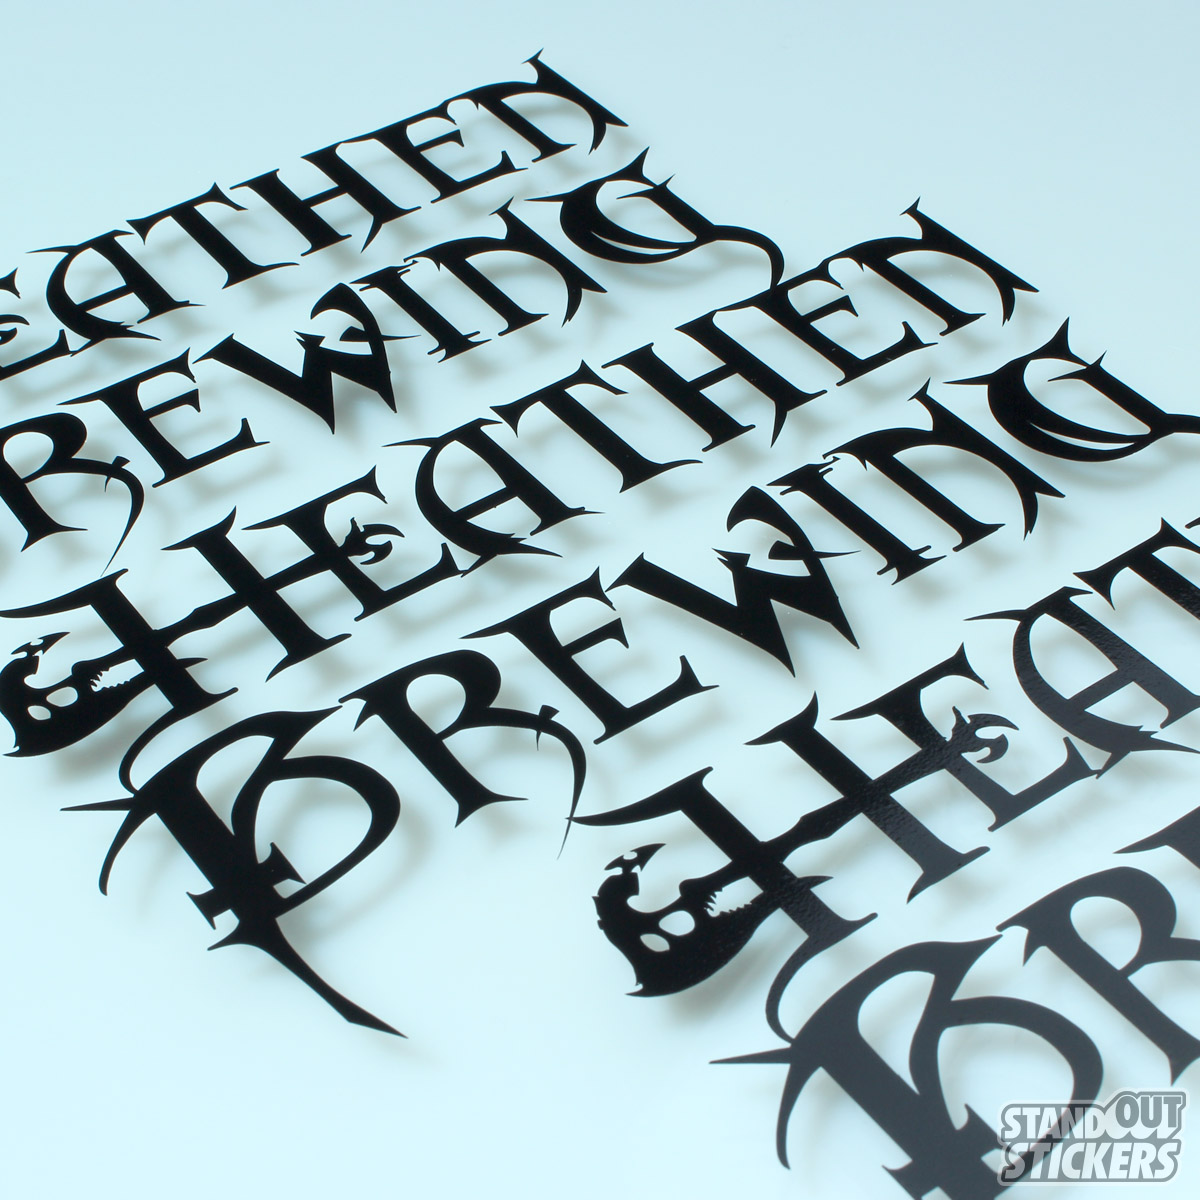 Heathen brewing cut vinyl decals in black